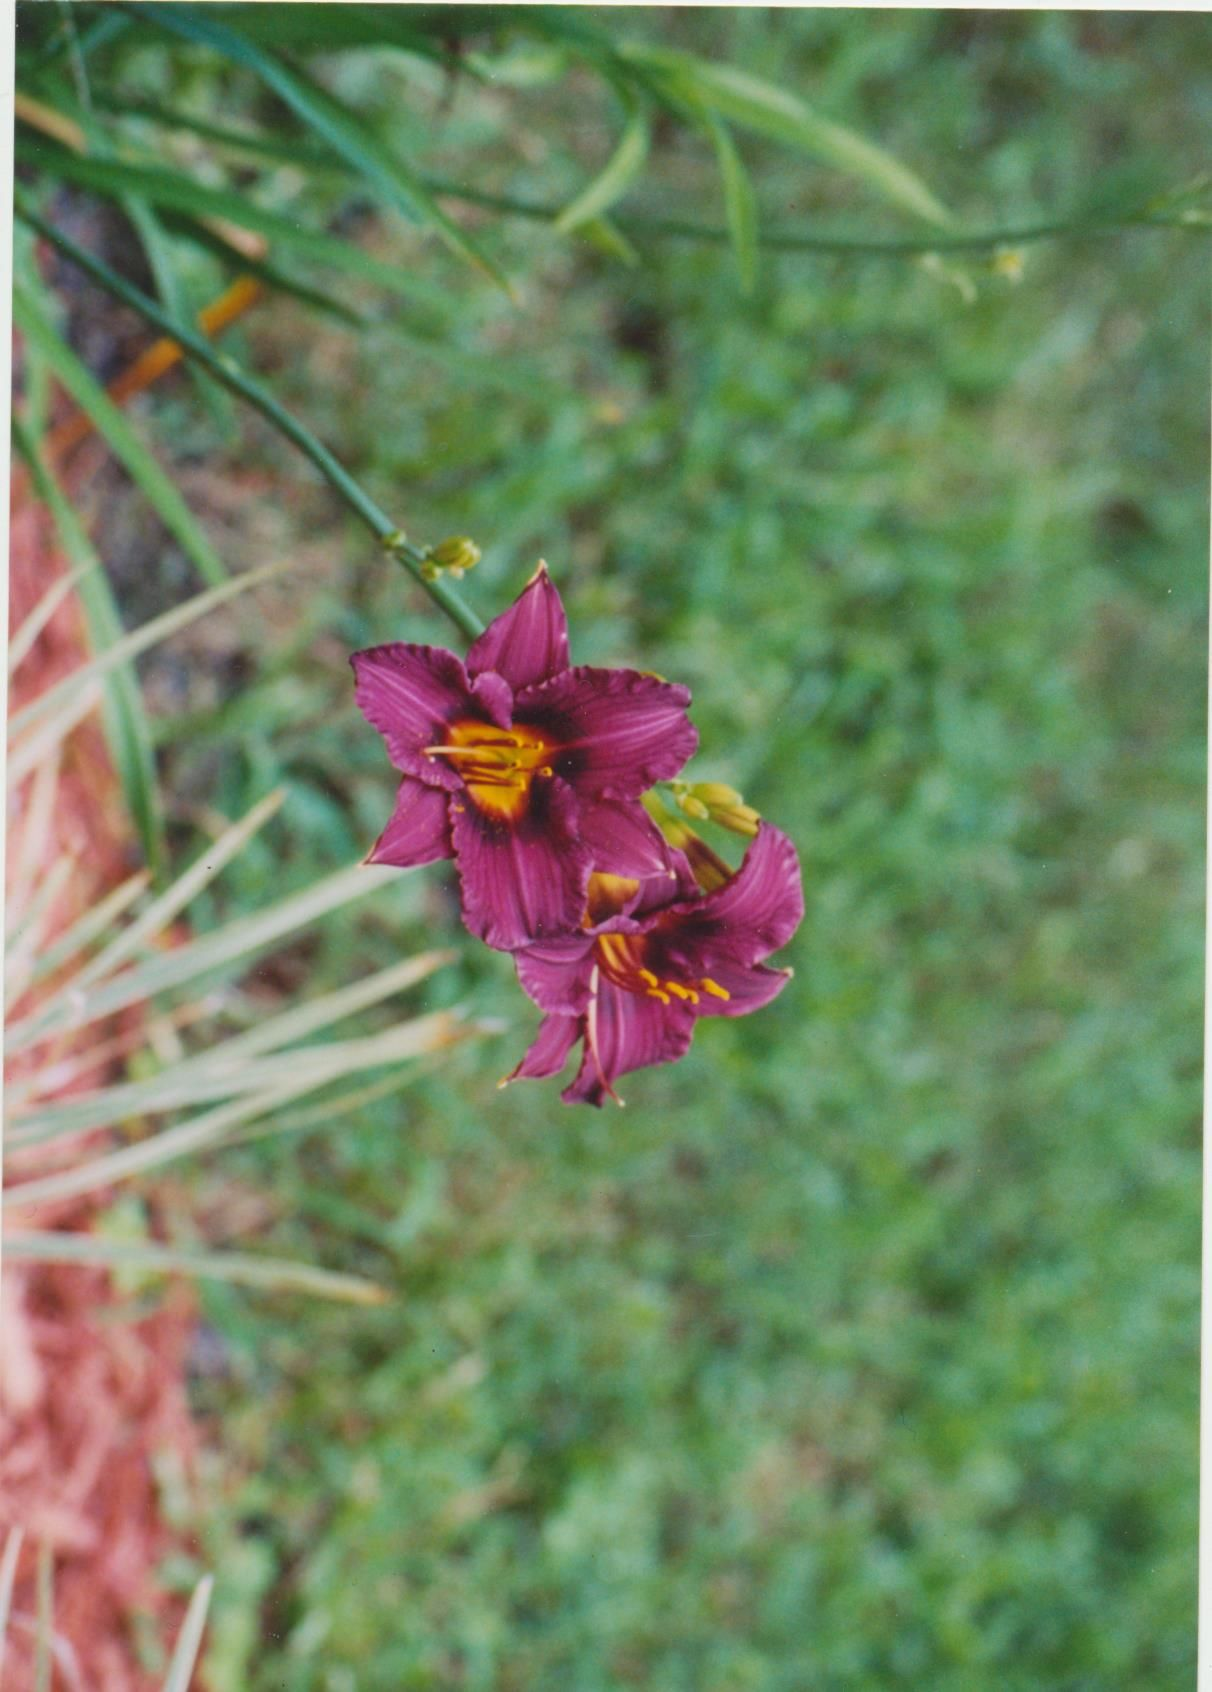 Day Lily - over 200 varieties - what's not to like?